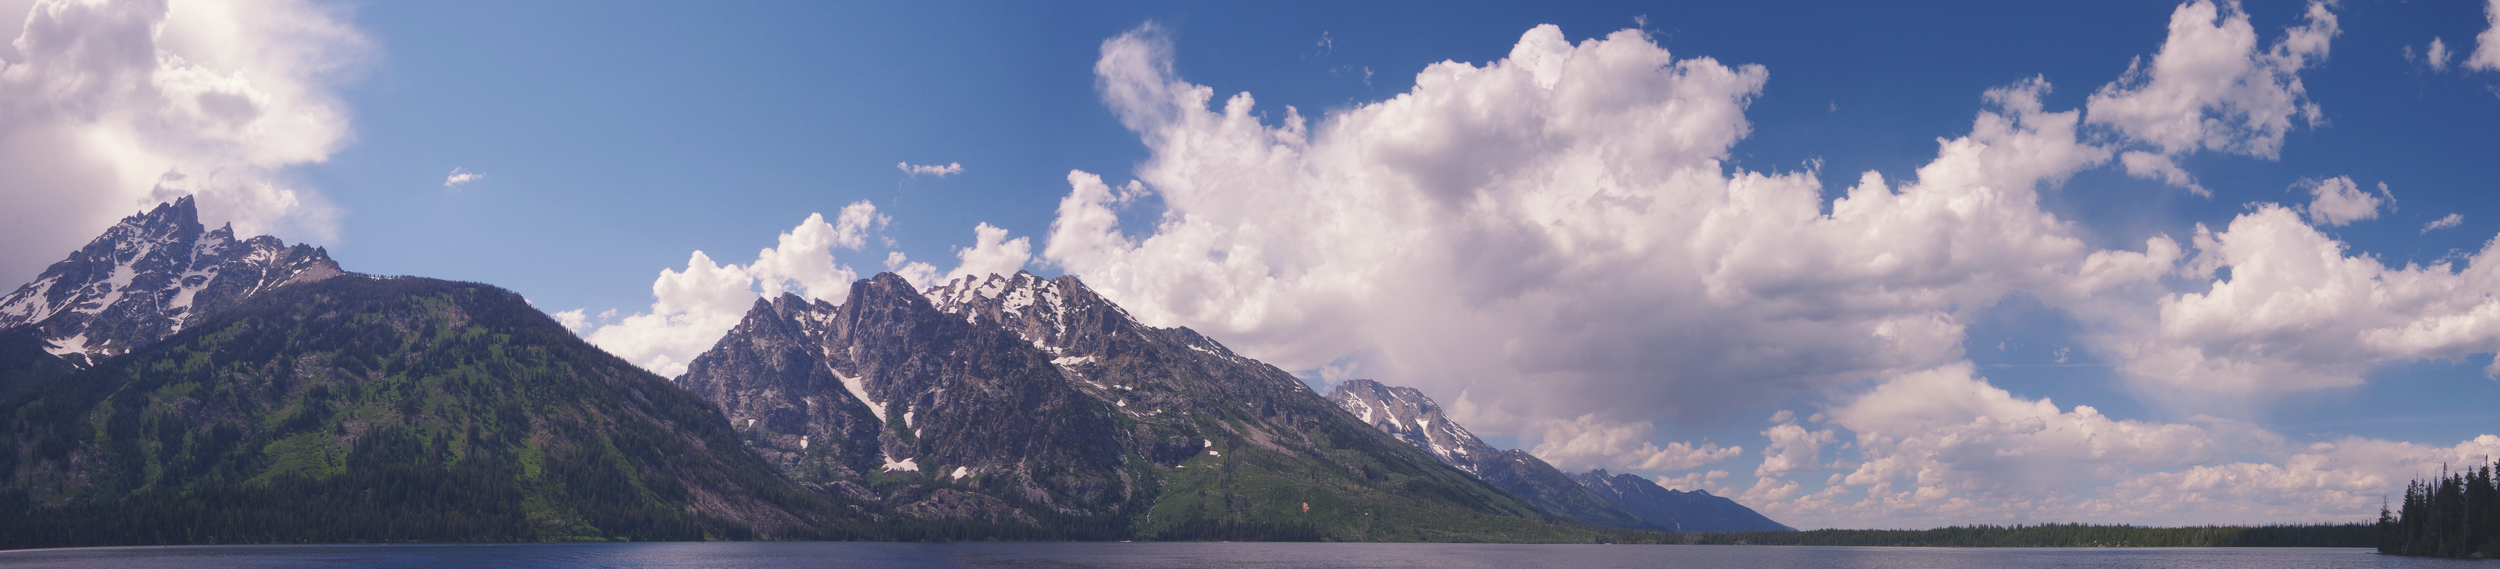 Jenny Lake Panorama 5.jpg